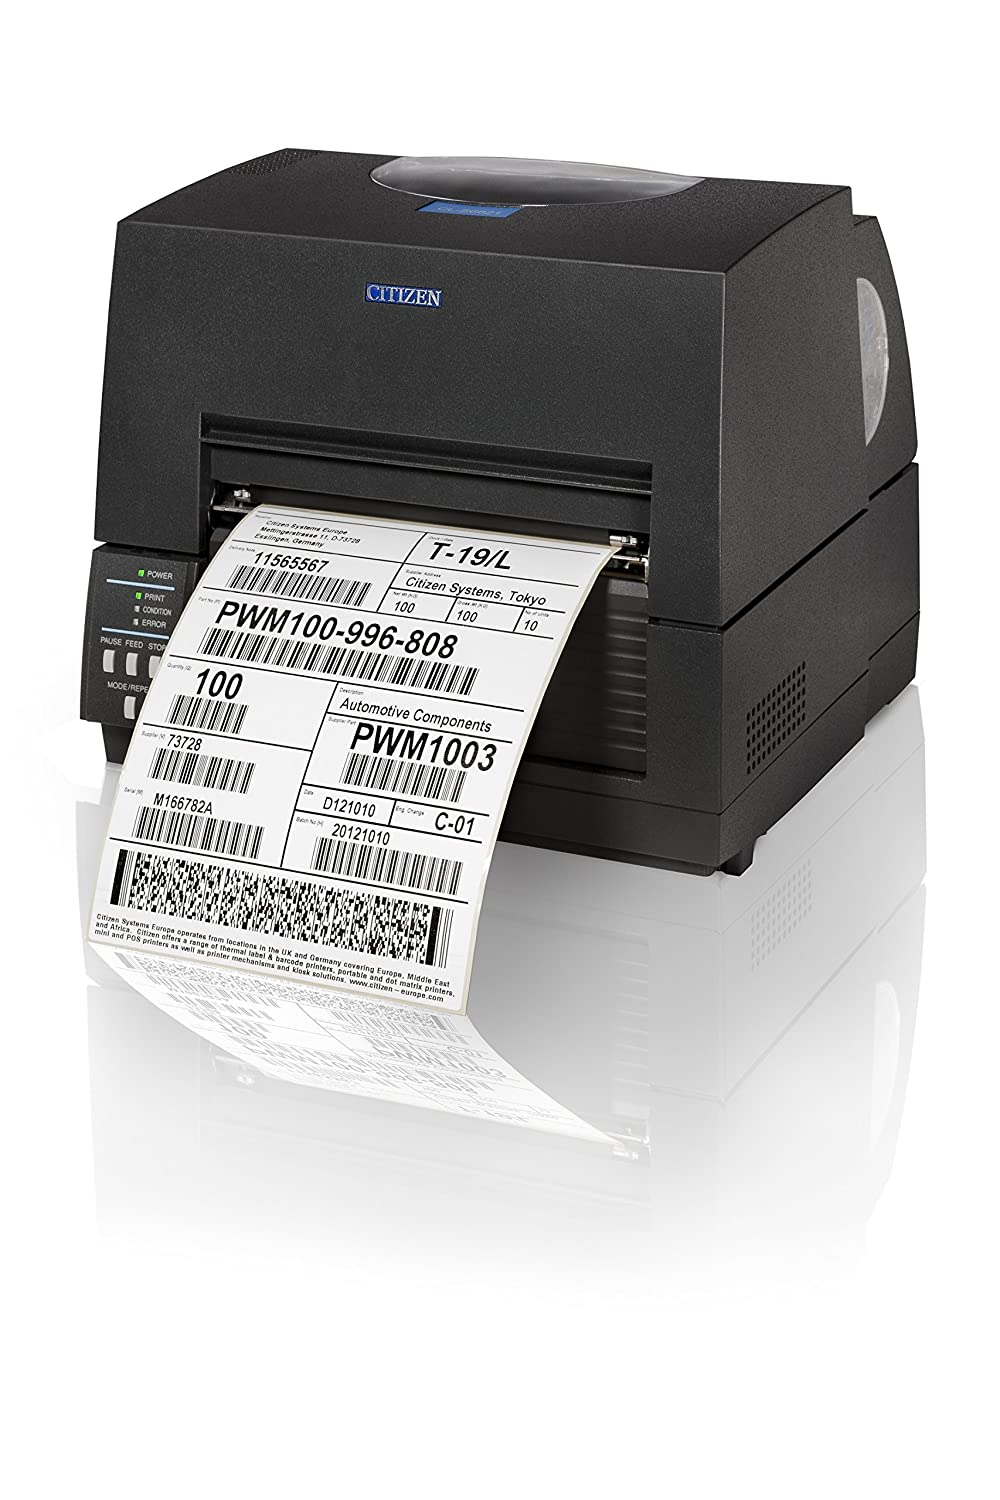 Citizen CL-S6621  schwarz  –   Label Etiketten (150  mm/s, 12,5  cm, Ethernet, Parallel, Wireless LAN, schwarz)